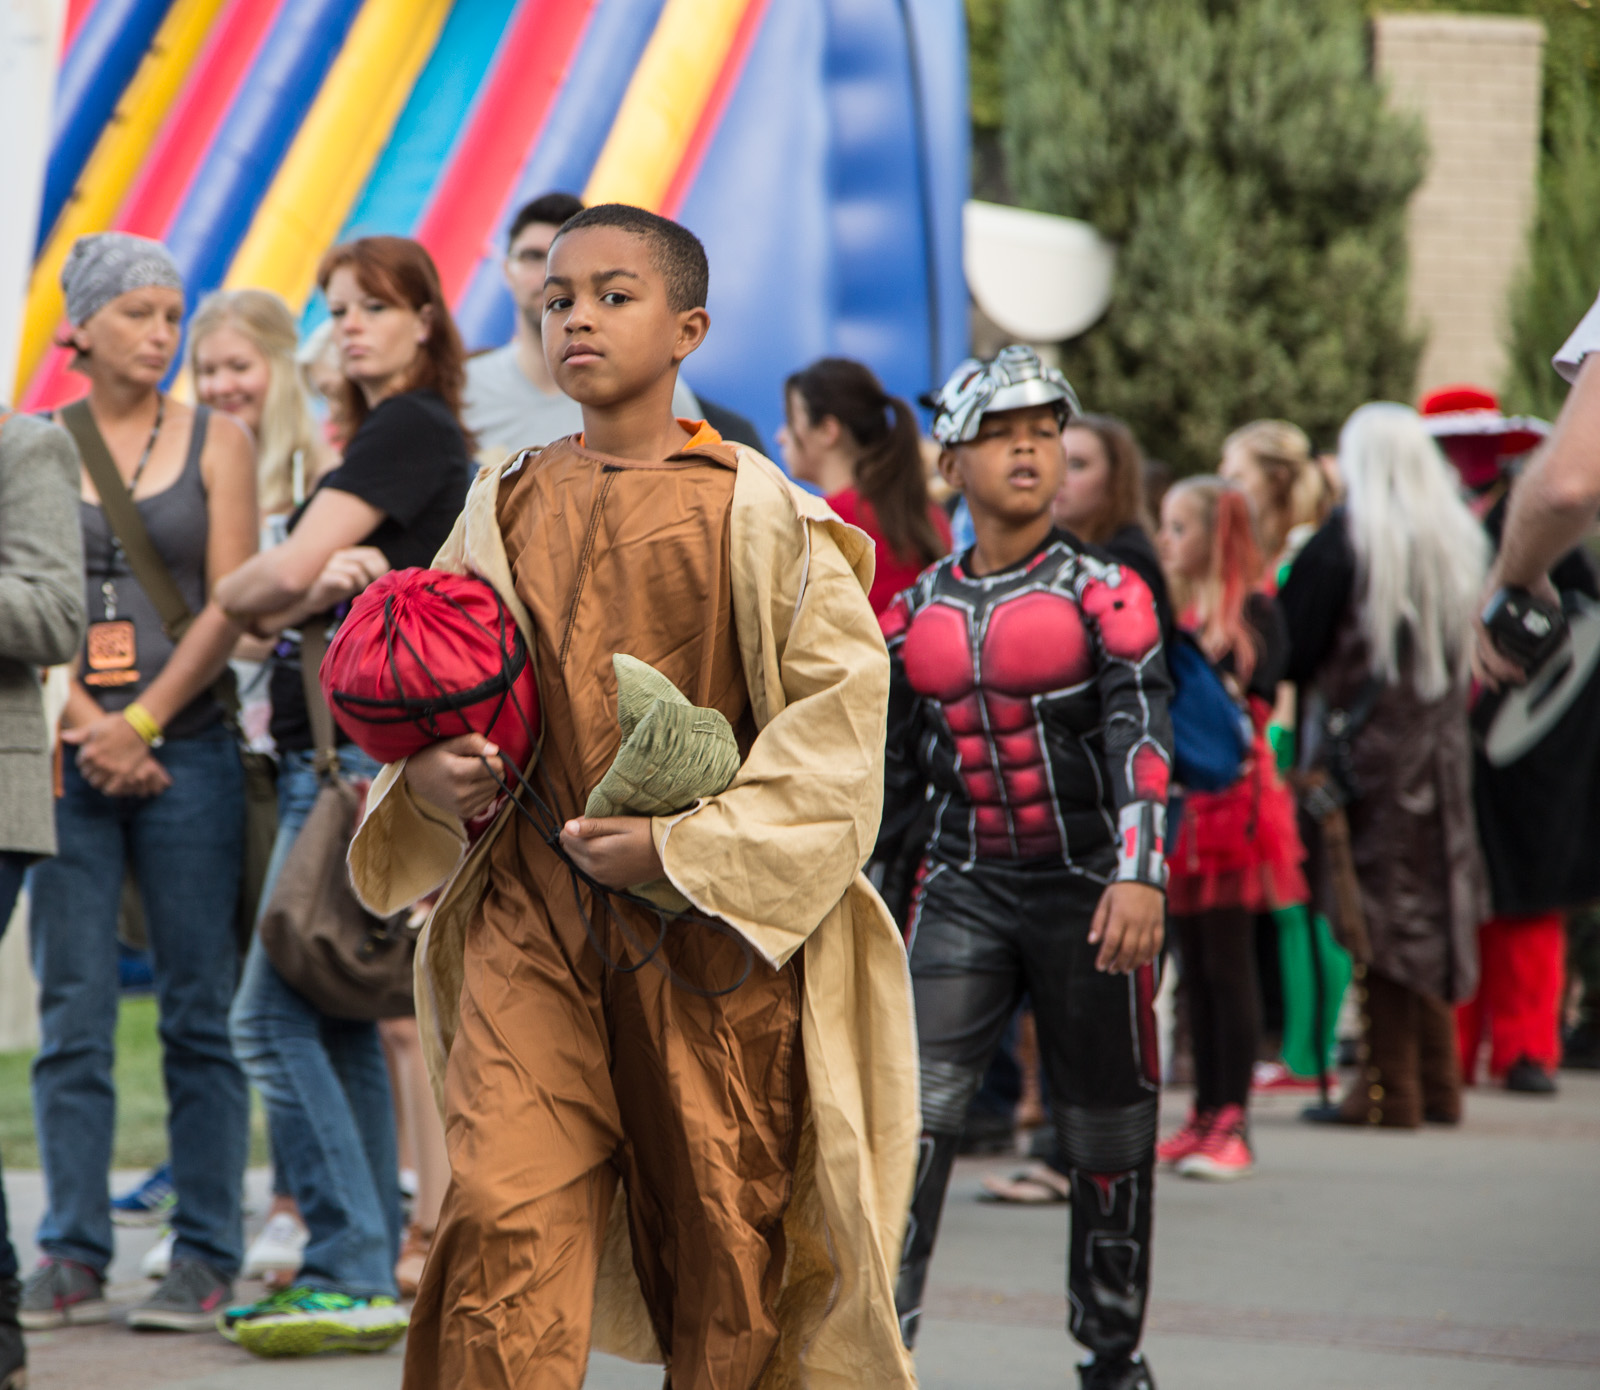 Boy dressed as Yoda, ComicCon, Salt Lake City, Utah. September, 2015.